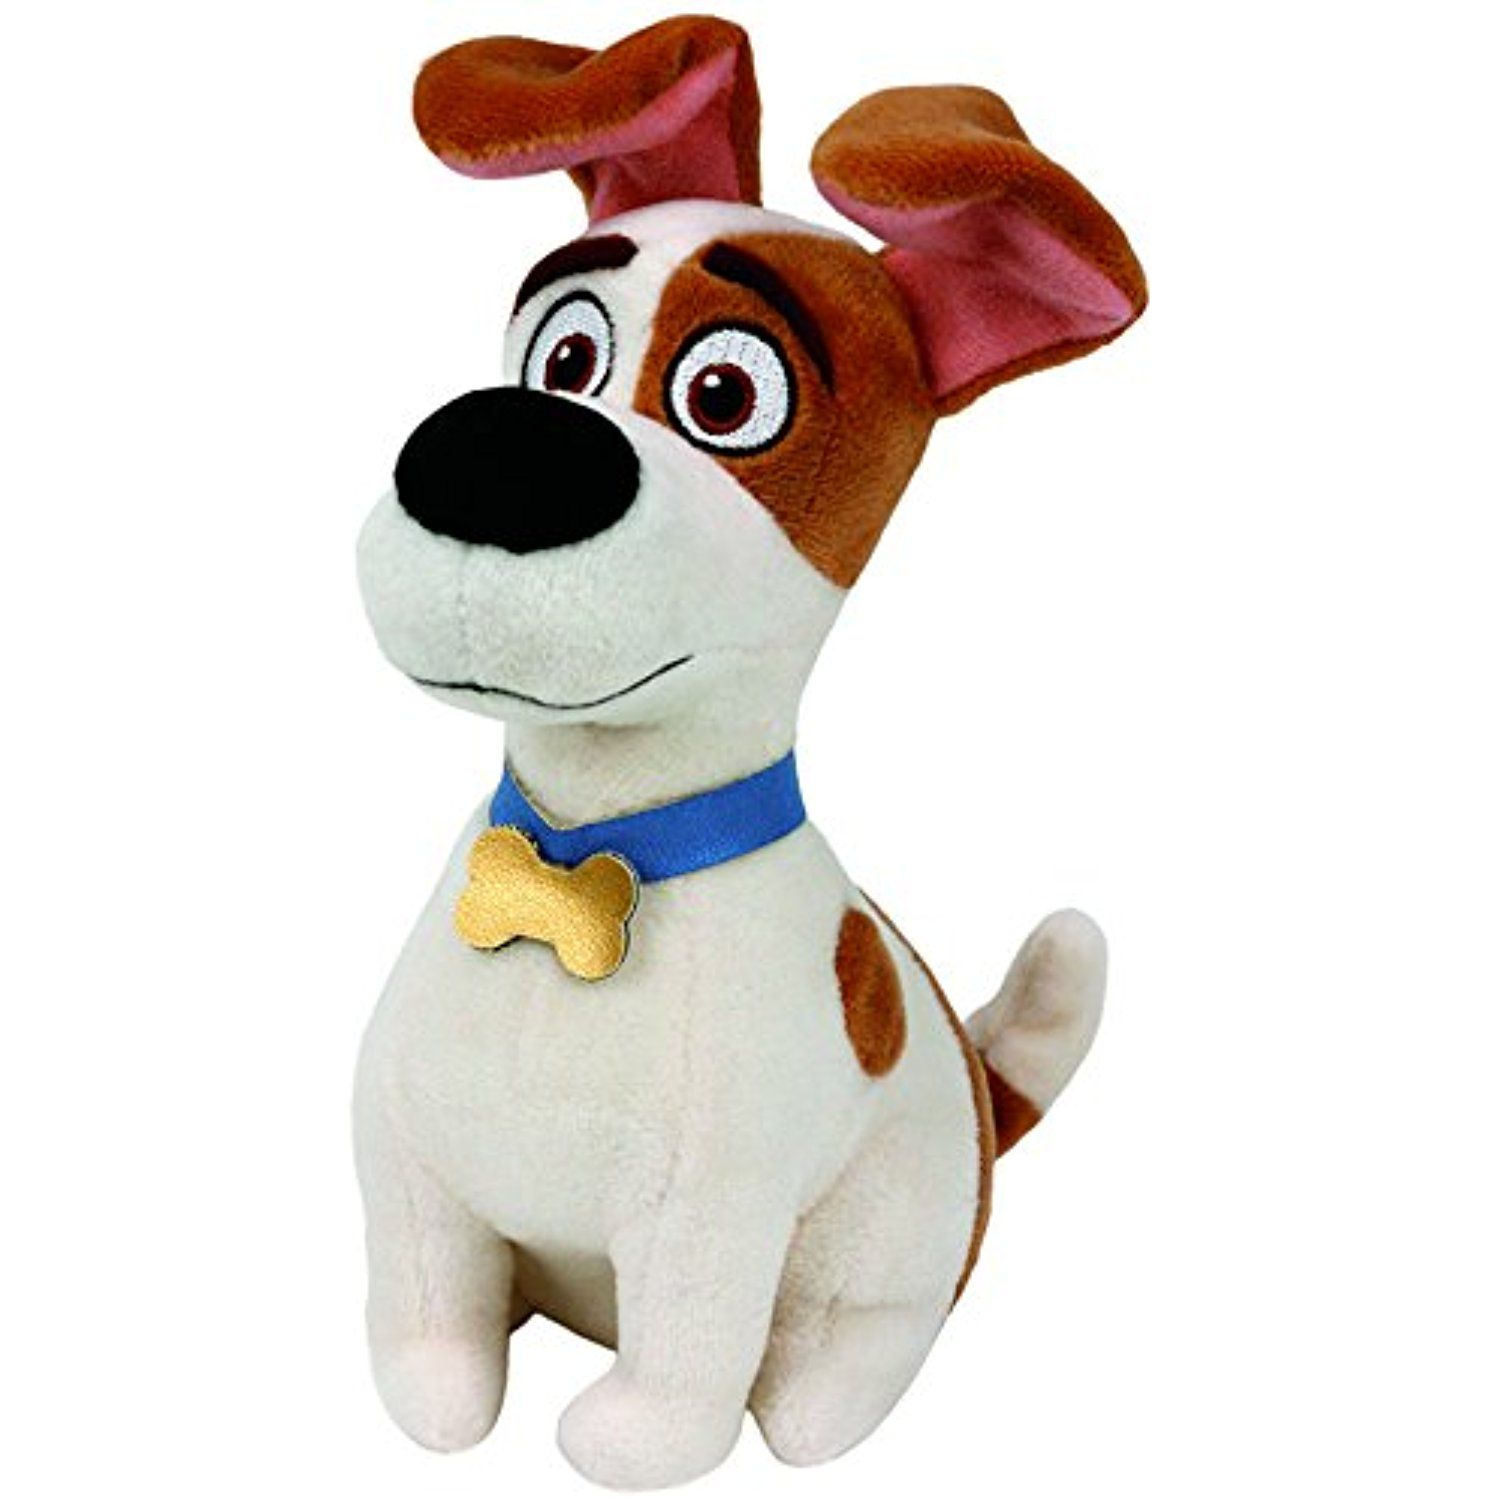 Ty Beanie Babies Secret Life Of Pets Max The Dog Regular Plush Details Can Be Found By Clicking On The Im Secret Life Of Pets Disney Stuffed Animals Pet Max